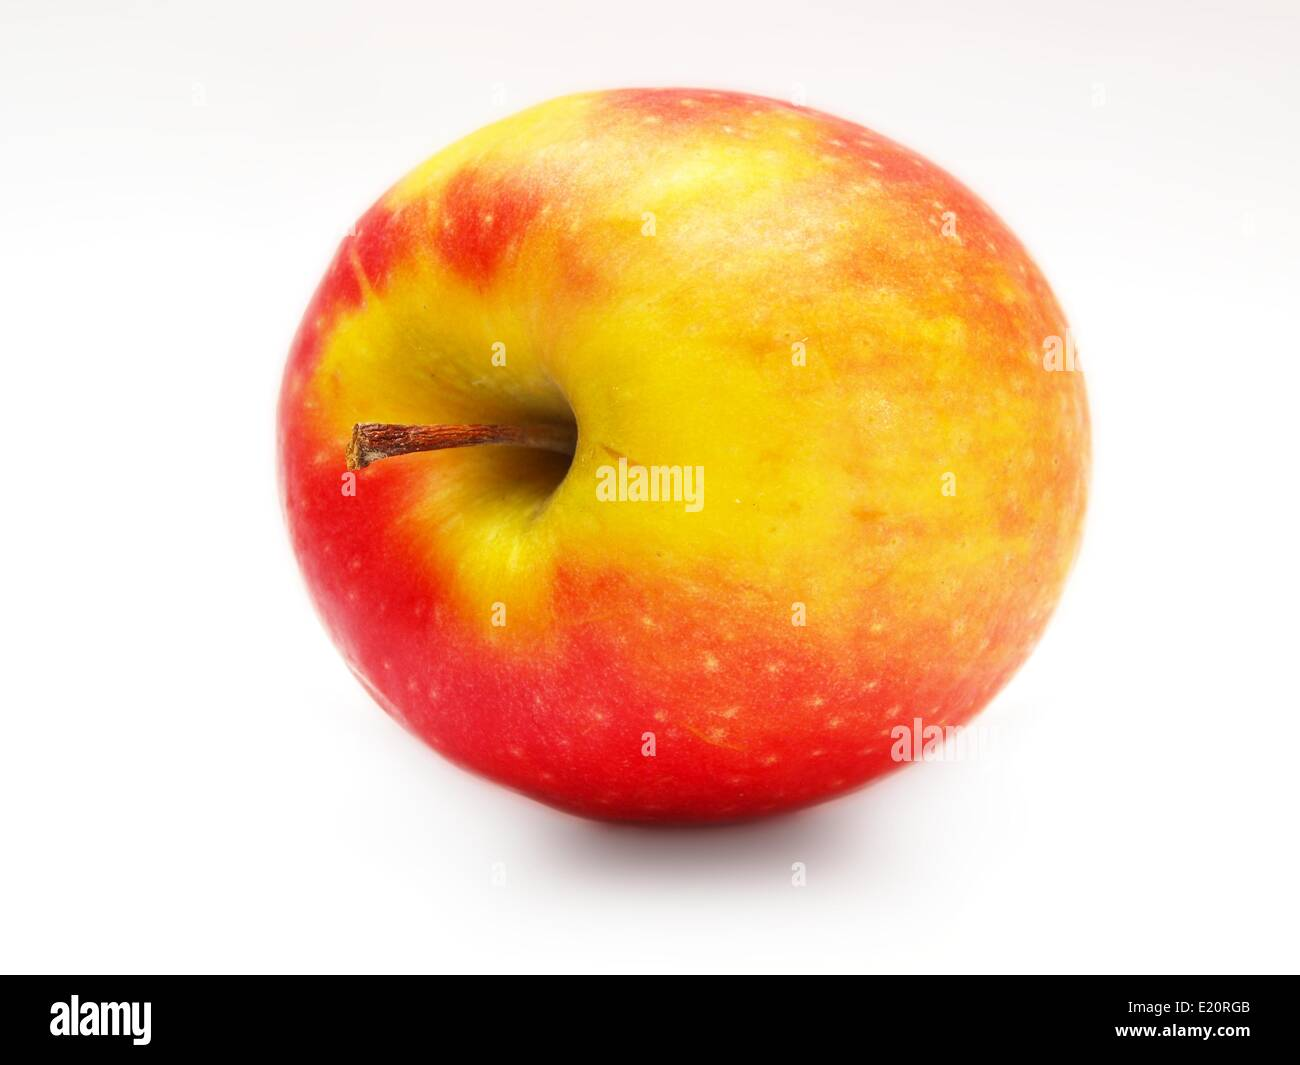 Red yellowish apple - Stock Image